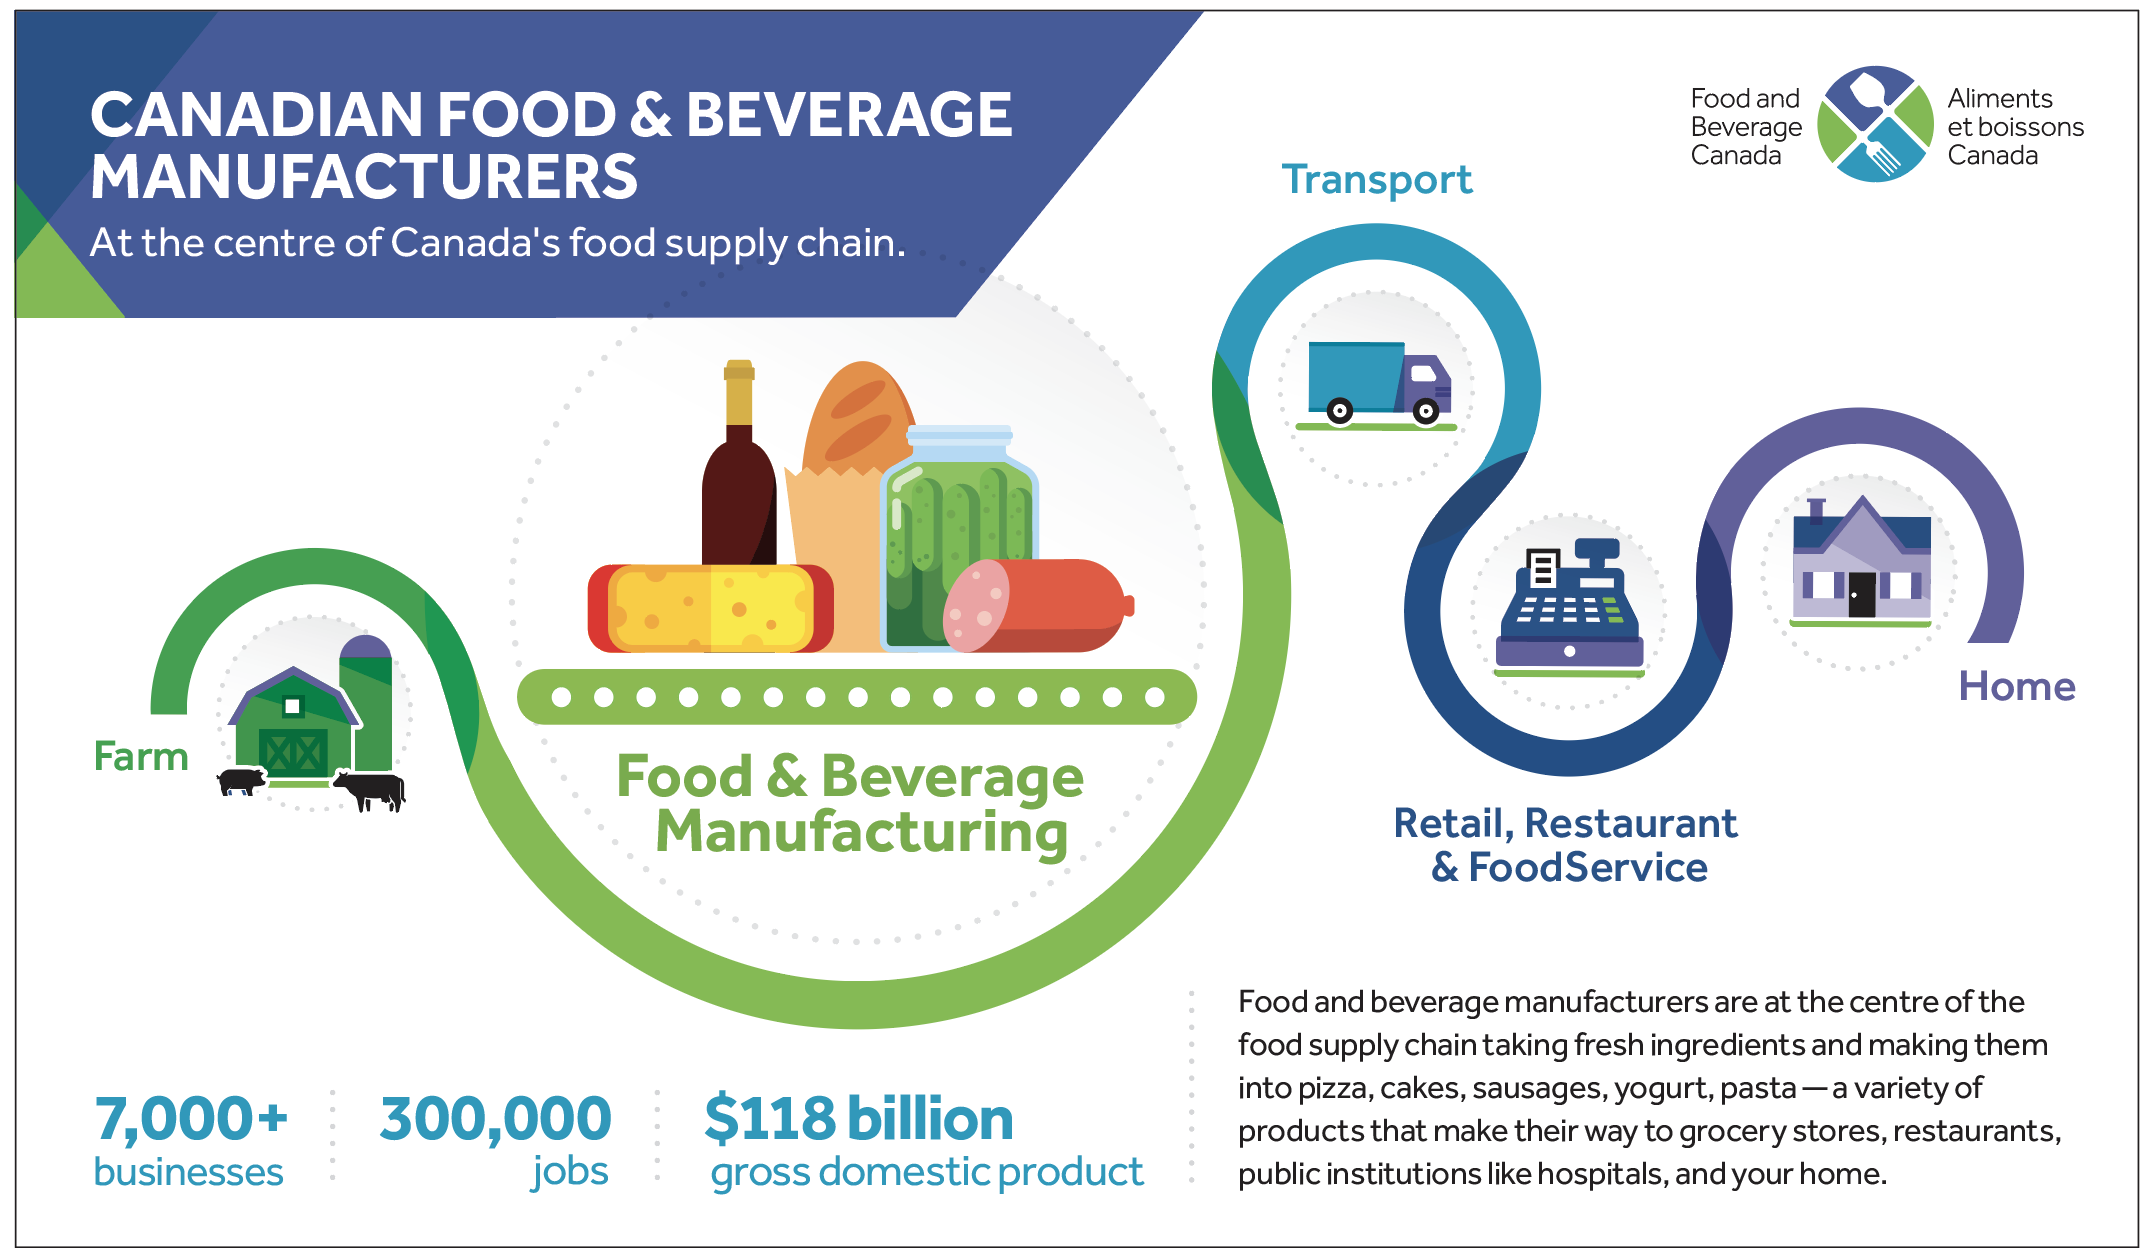 Canadian Food & Beverage Manufacturers